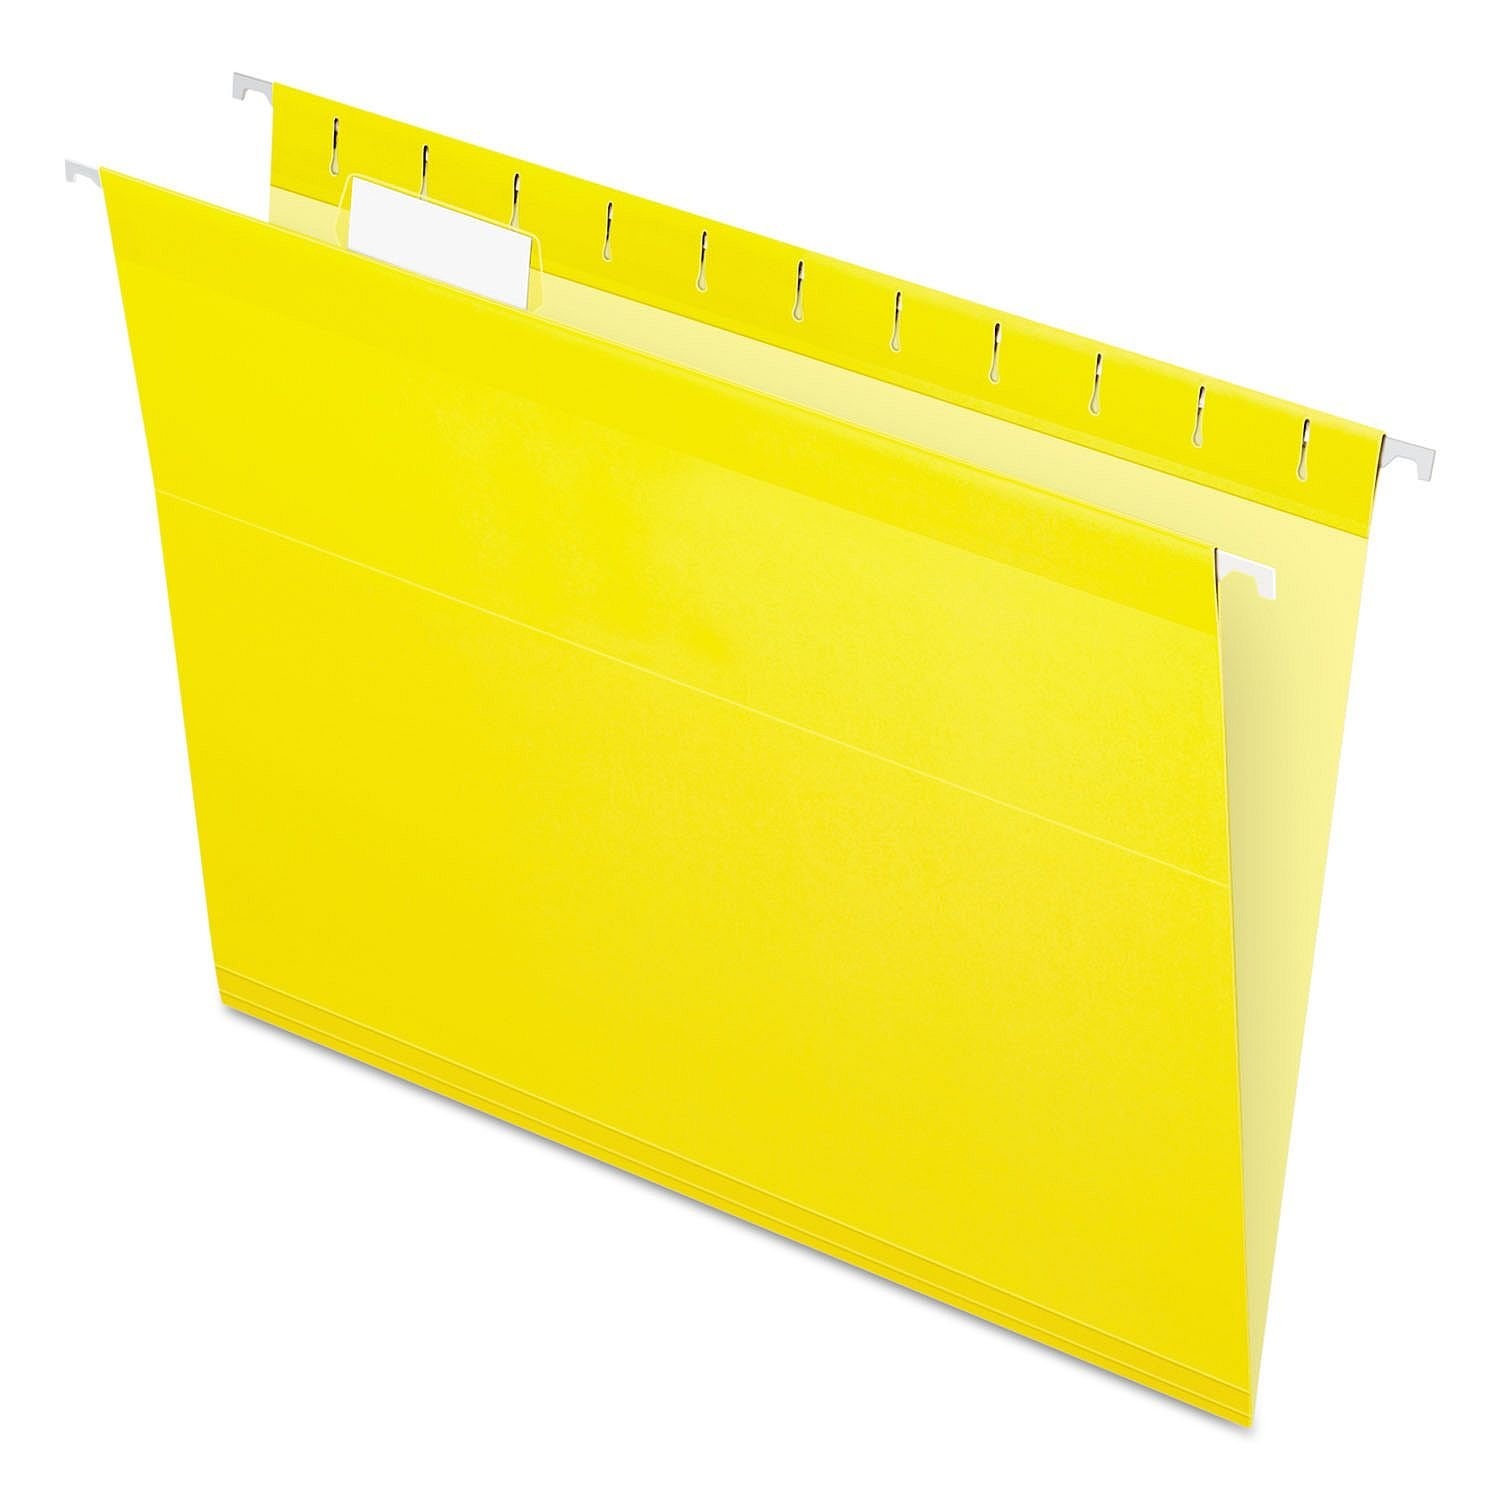 Pendaflex Reinforced Hanging File Folders, Letter Size, Yellow, 1/5 Cut, 25/BX (4152 1/5 YEL)